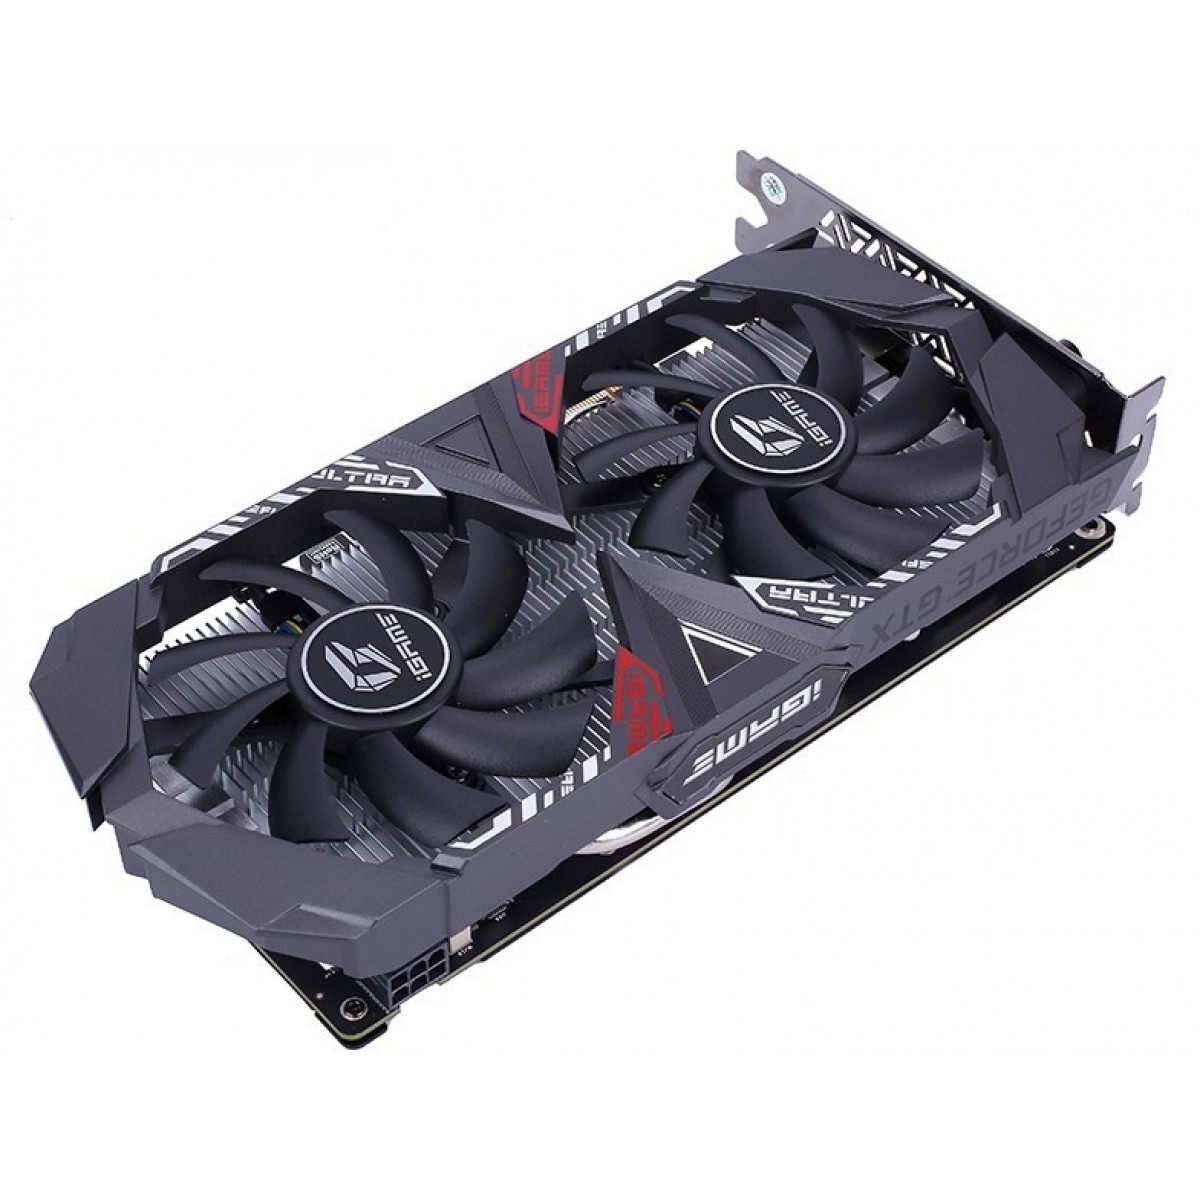 Placa de Vídeo Colorful iGame GeForce GTX 1650 Ultra 4G-V Dual, 4GB GDDR5, 128Bit